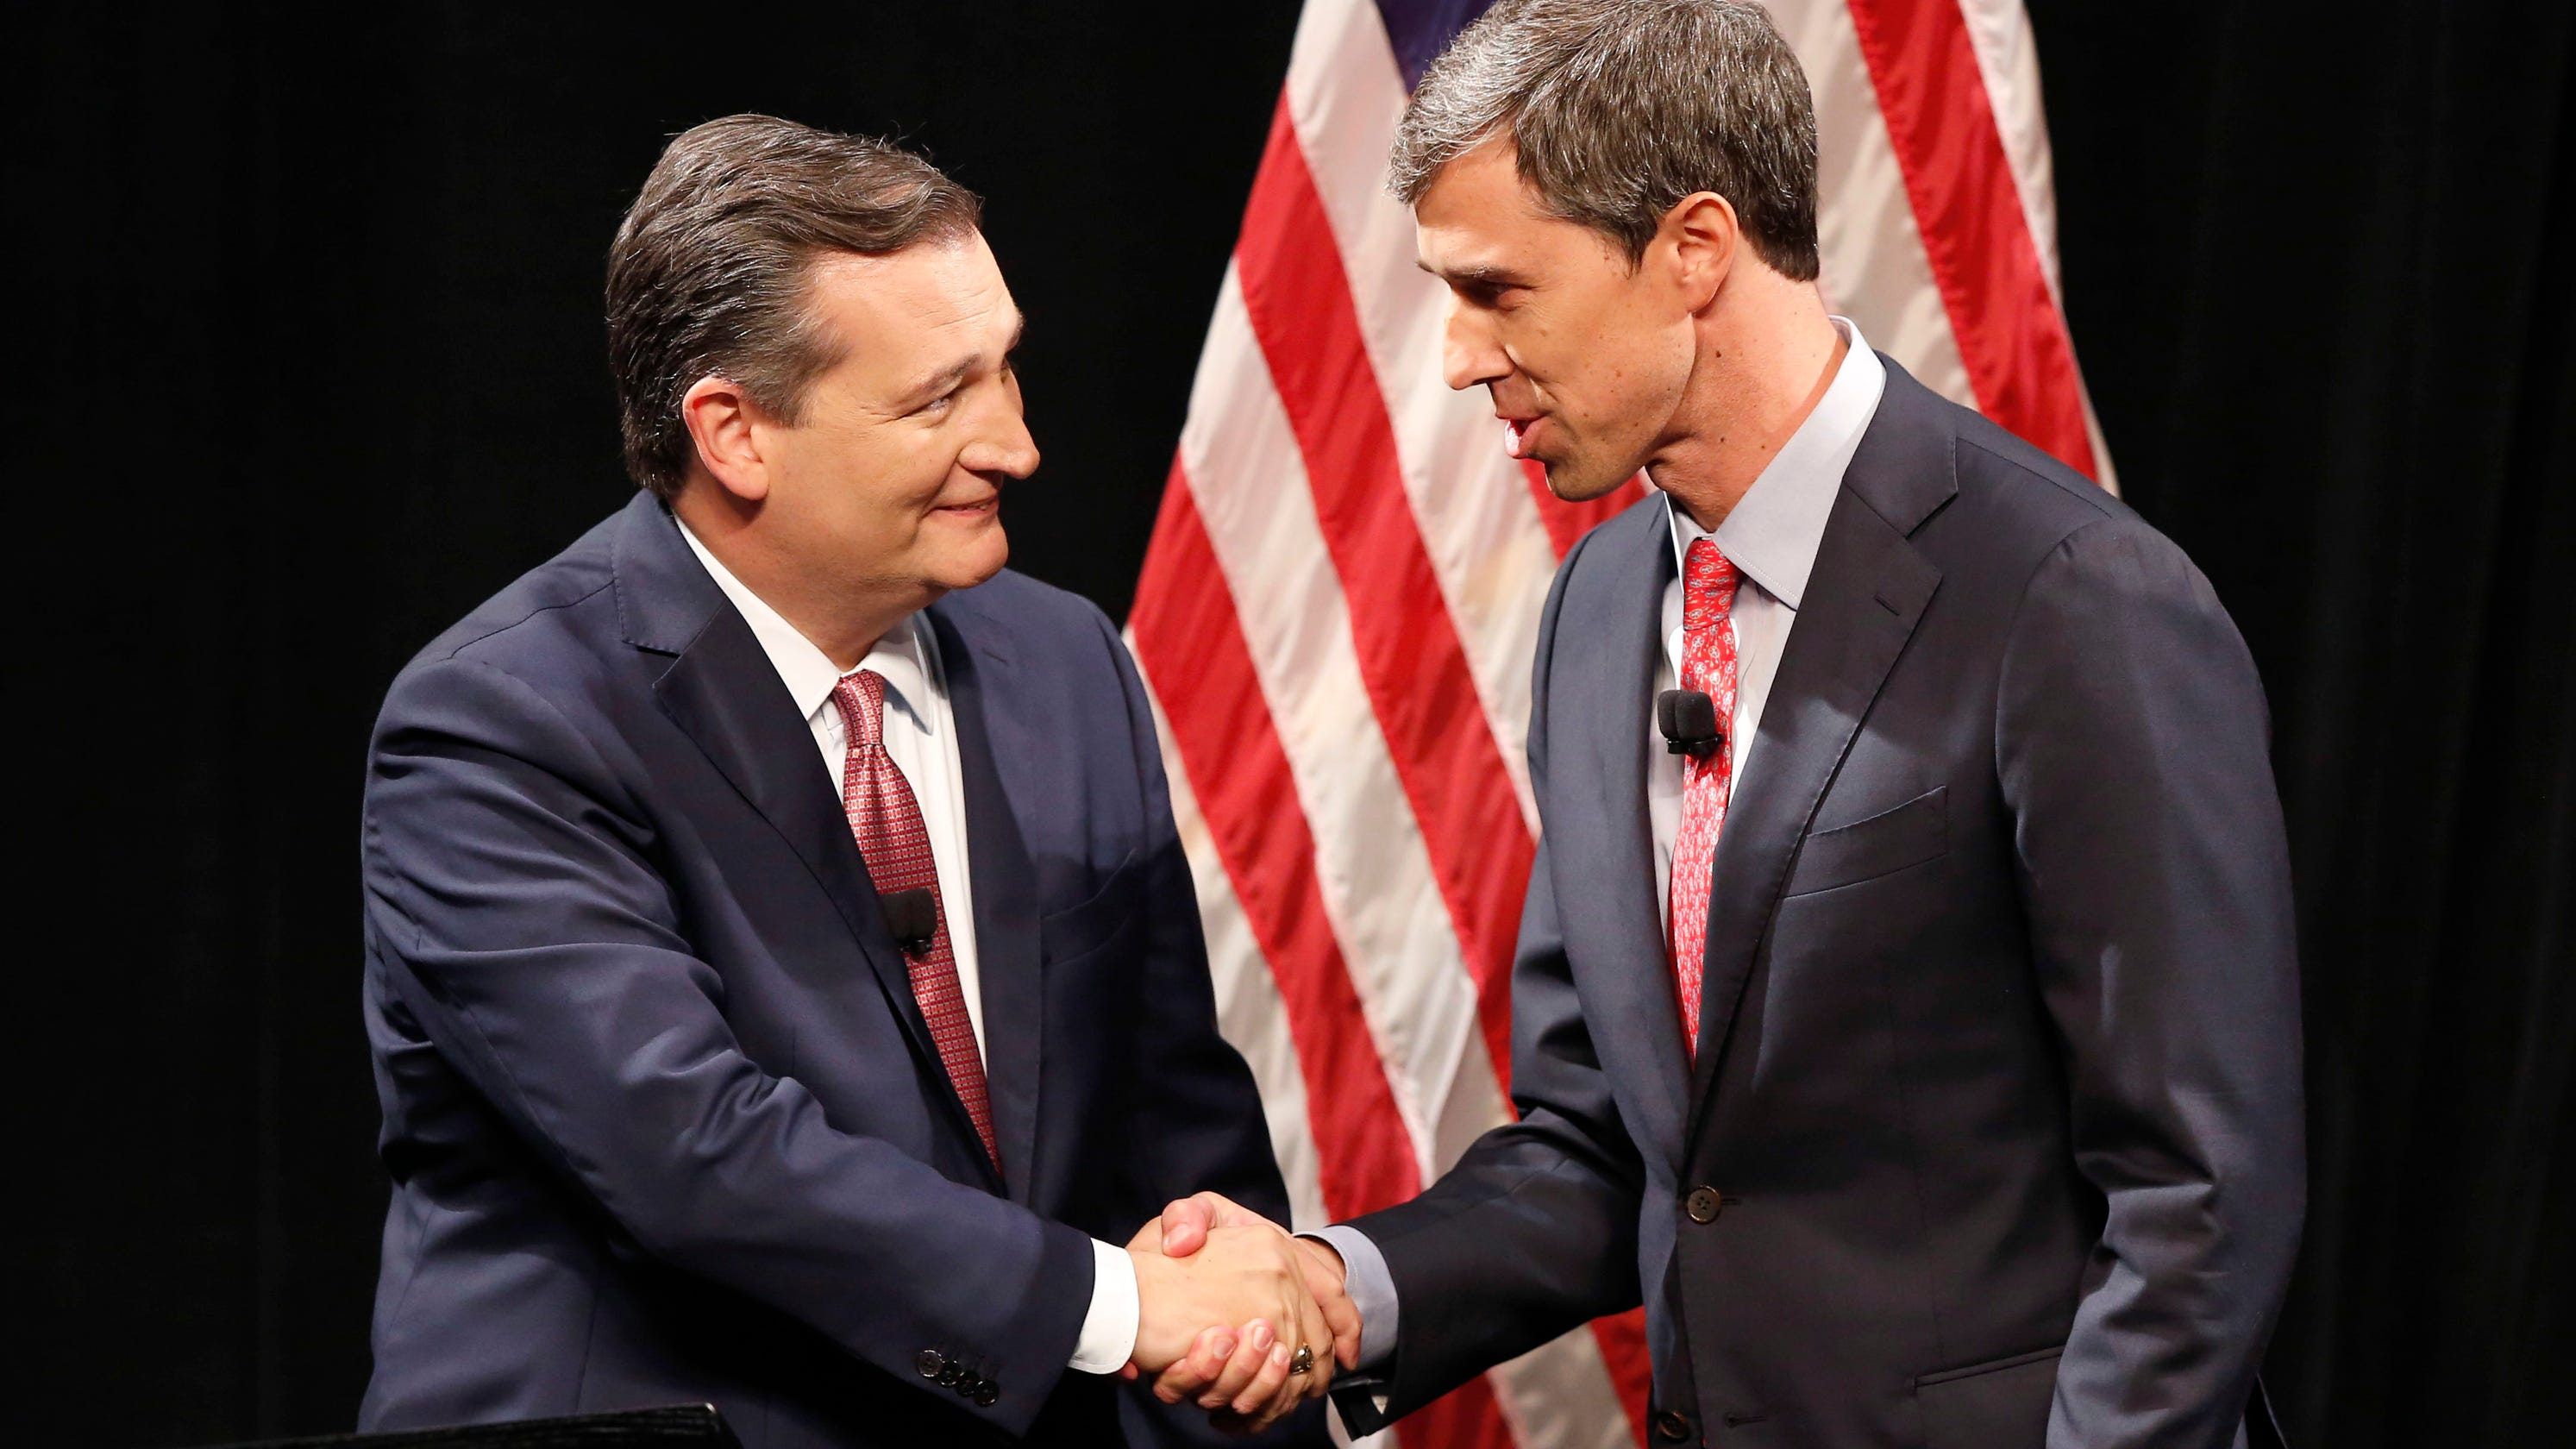 Ted Cruz and Beto O'Rourke to meet in Houston for second ...